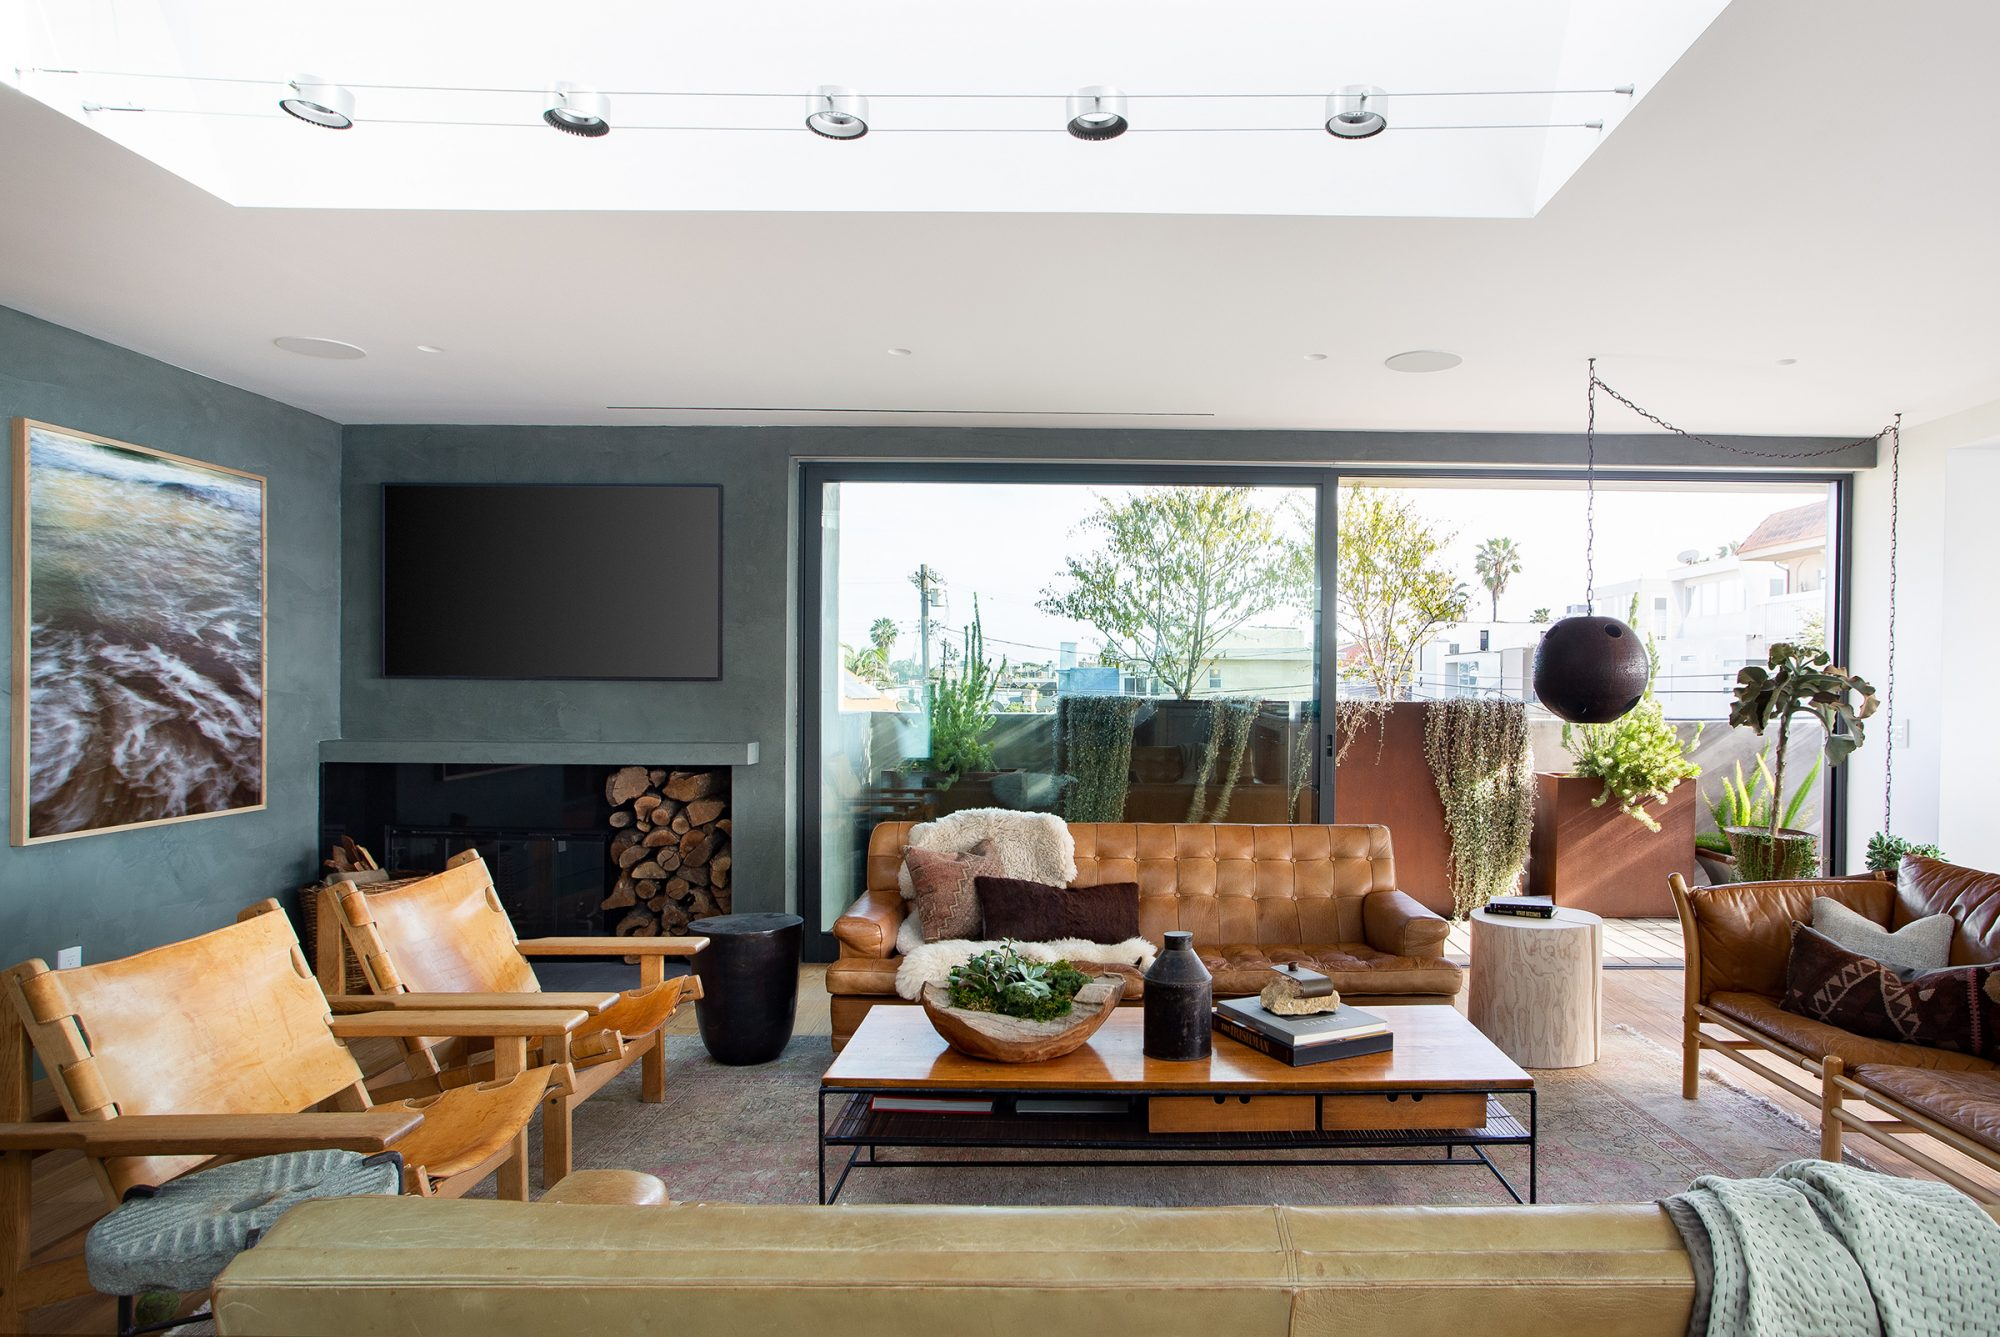 Anna Paquin Home in Architectural Digest